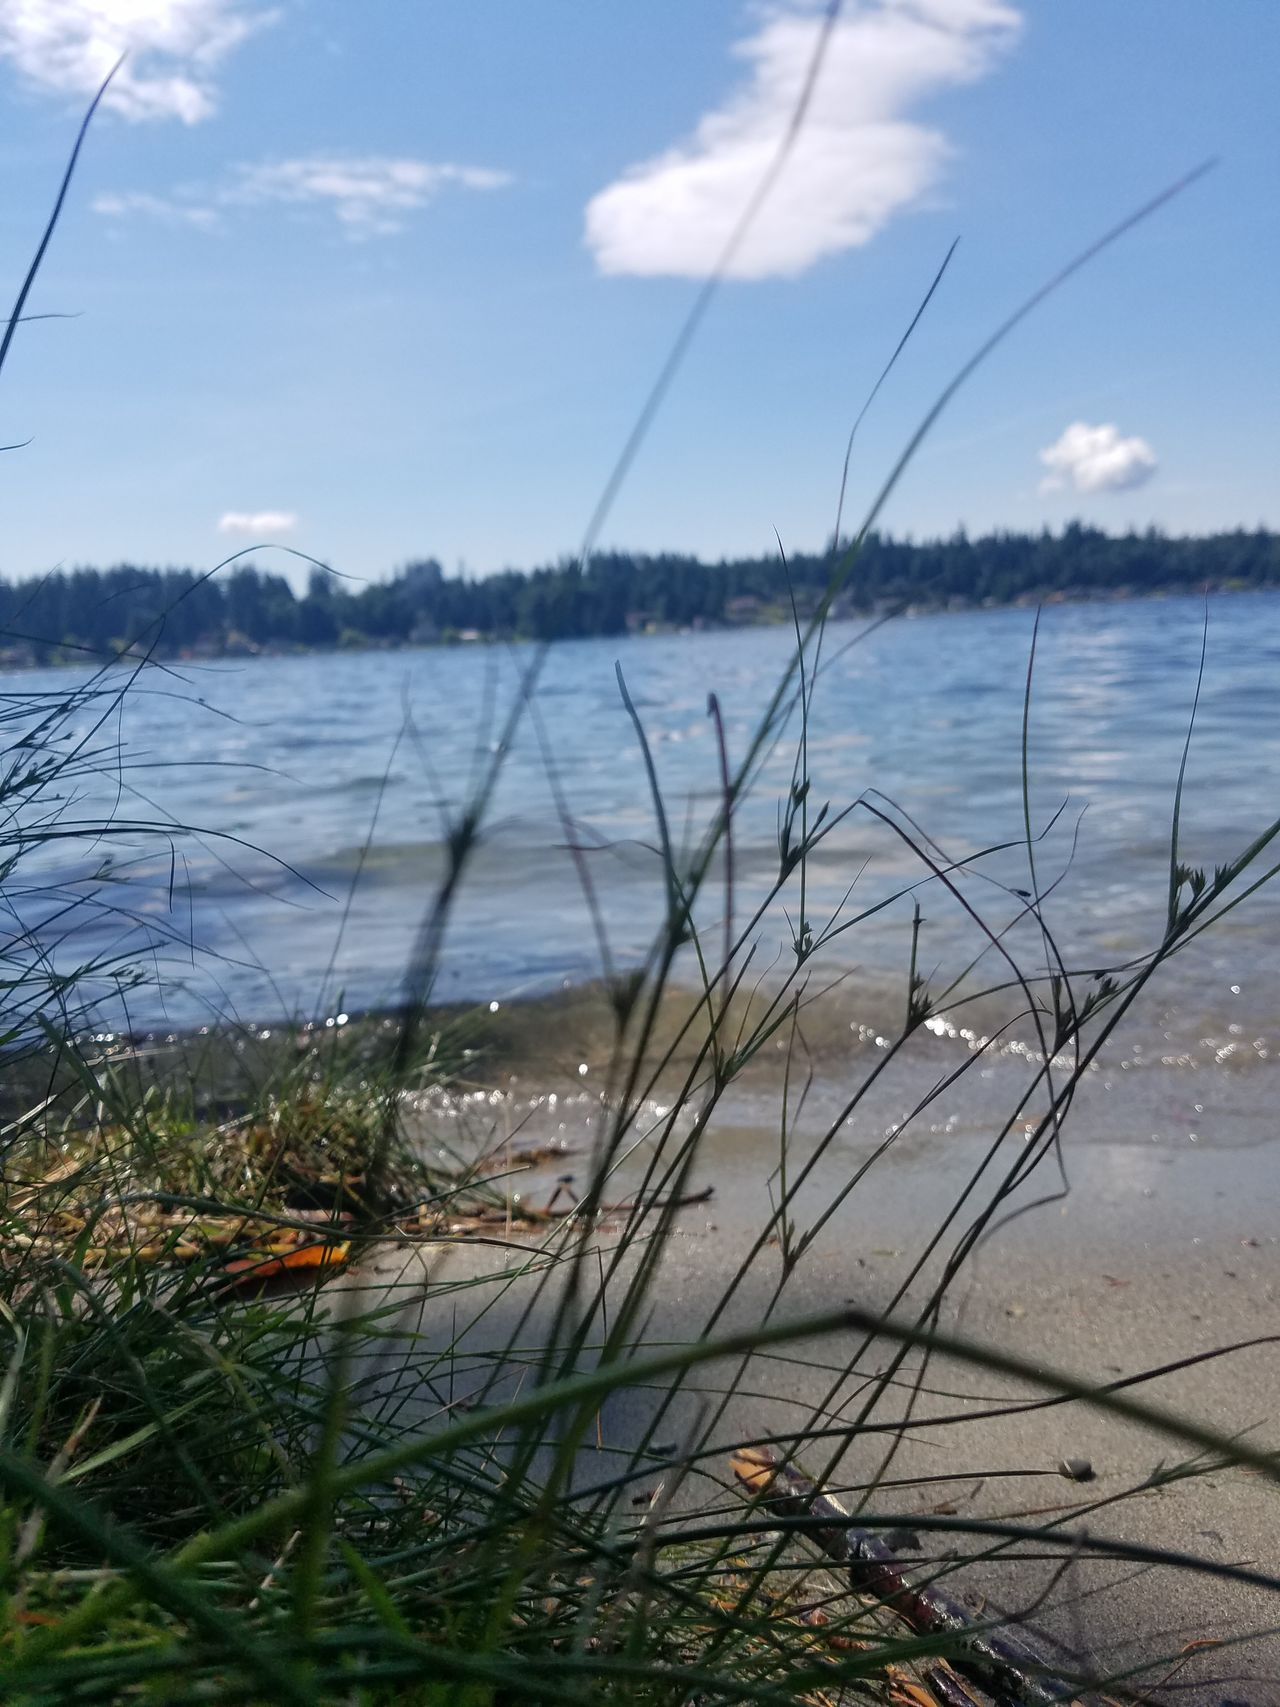 Water Beach Nature Grass Lake Landscape Cloud - Sky Uncultivated No People Outdoors Sand Sky Day